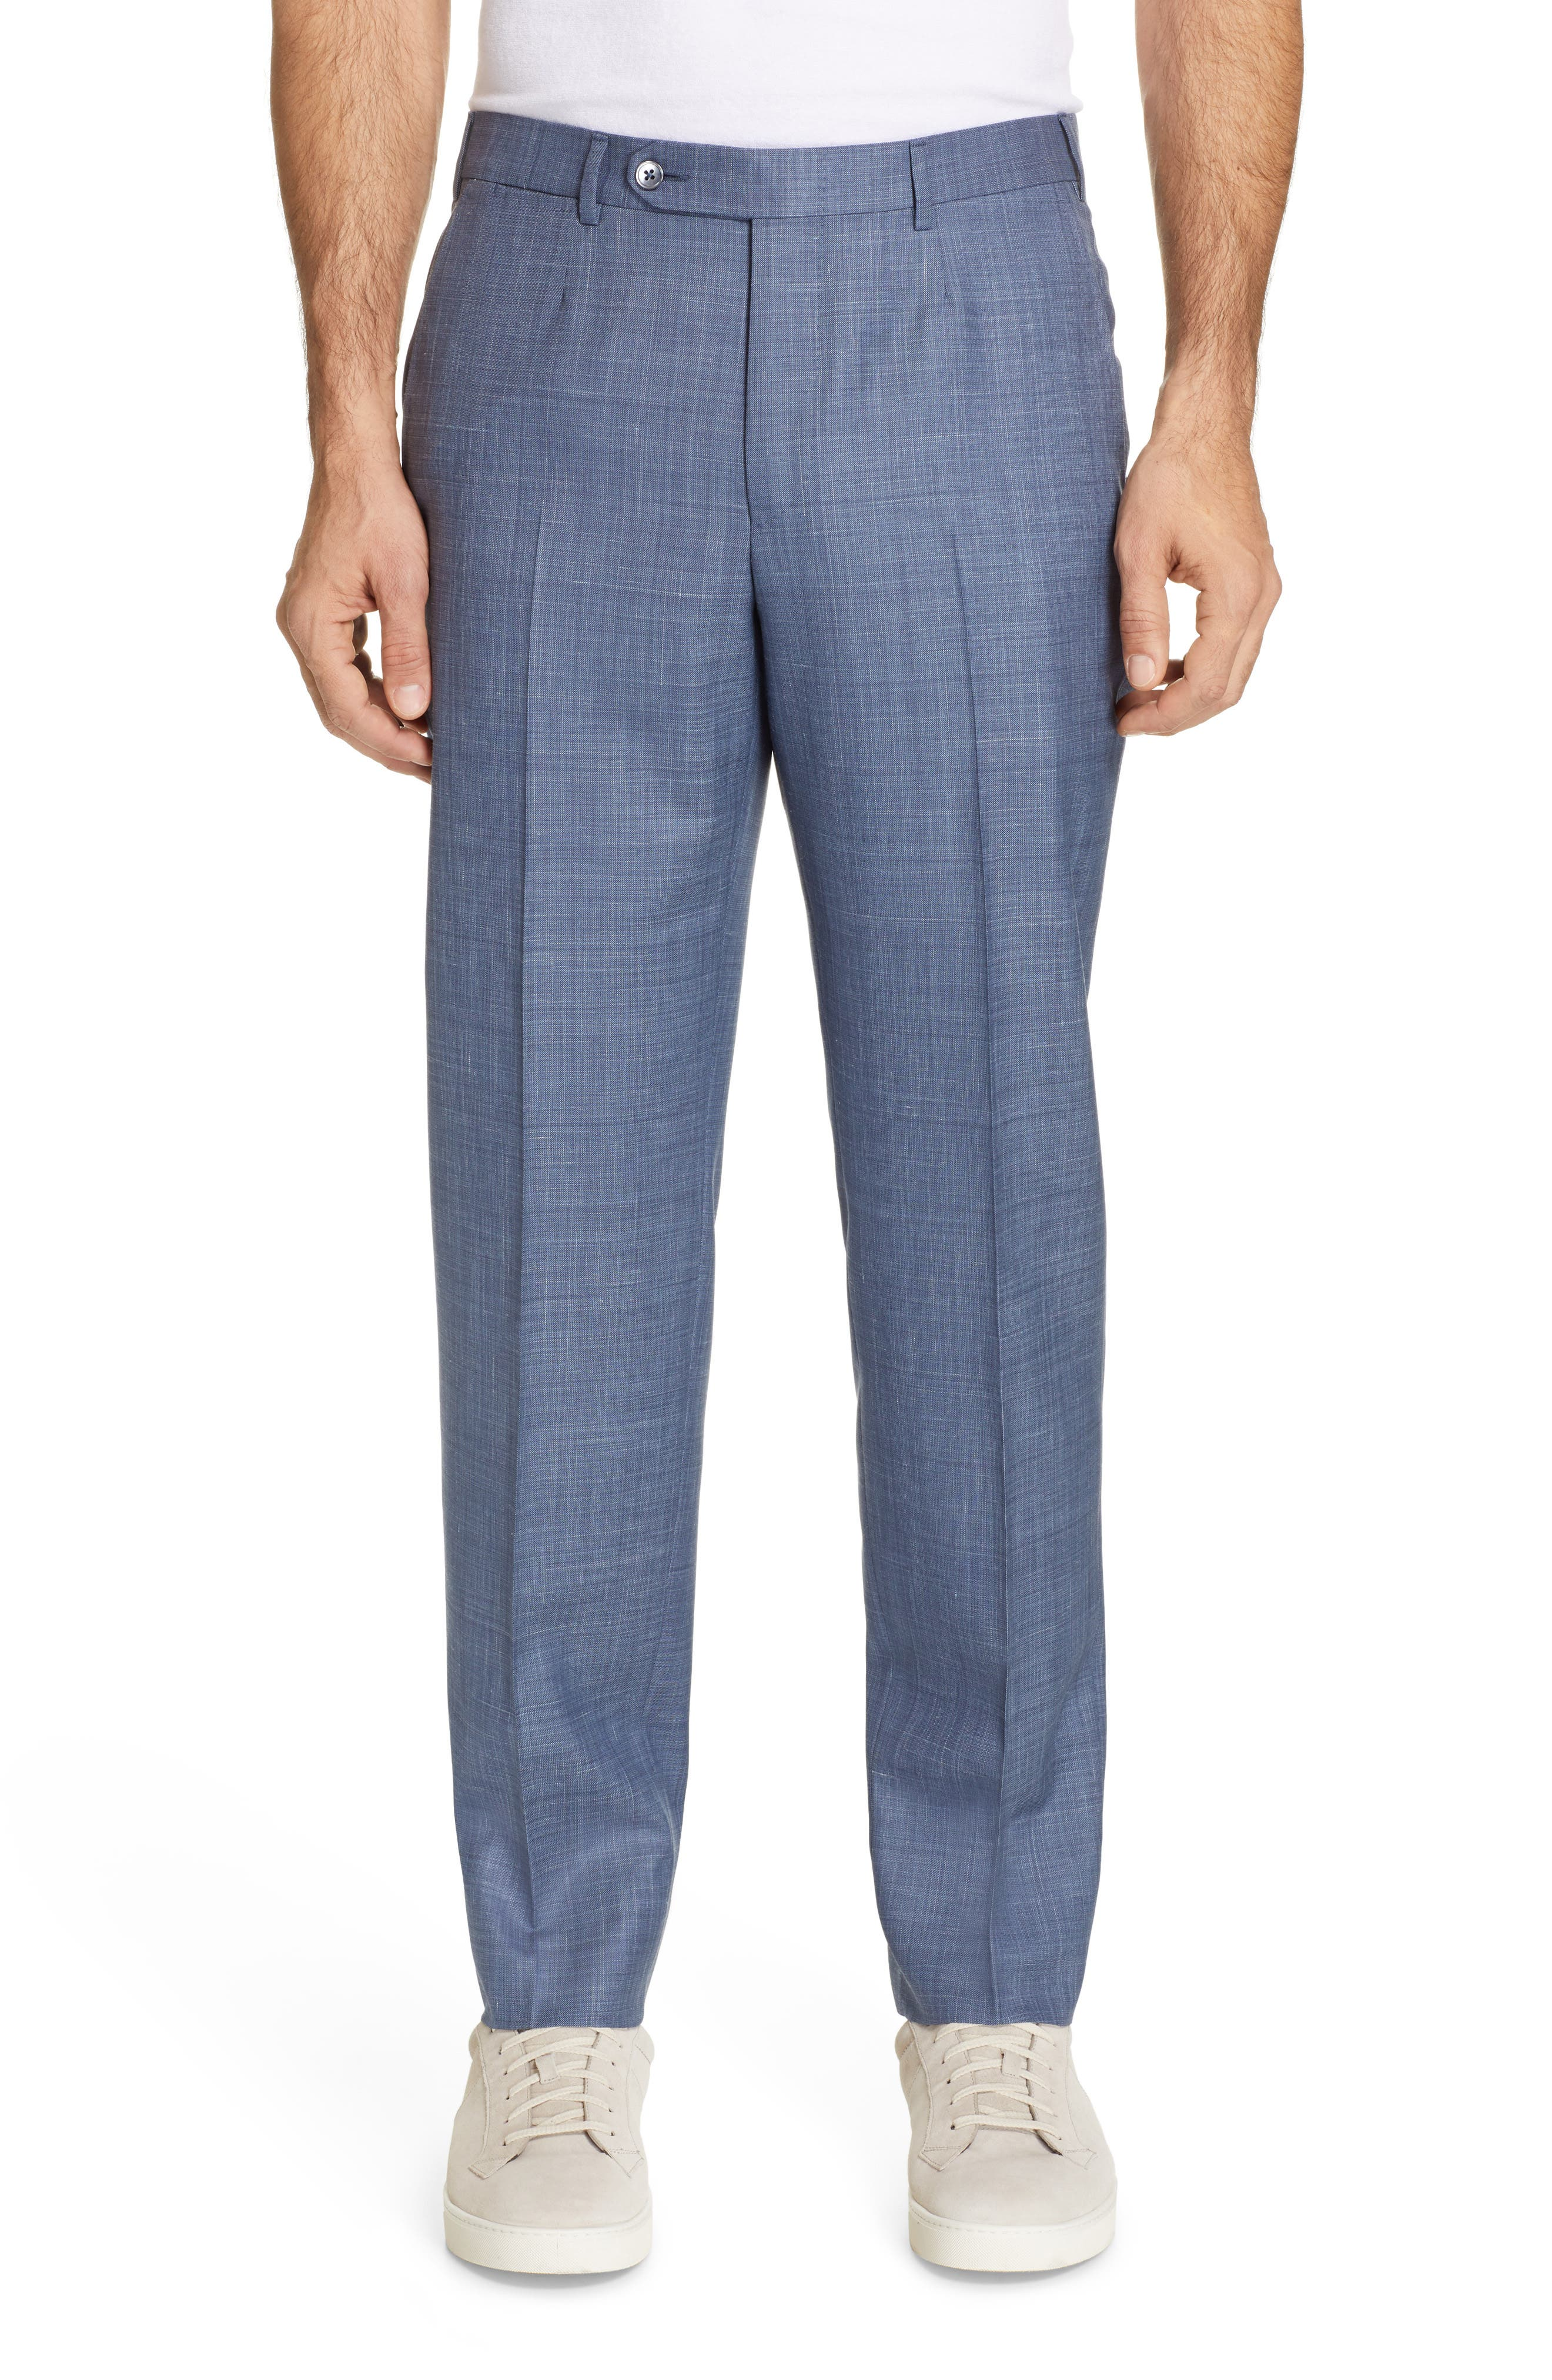 ERMENEGILDO ZEGNA, Trofeo Classic Fit Solid Wool Blend Suit, Alternate thumbnail 6, color, BLUE